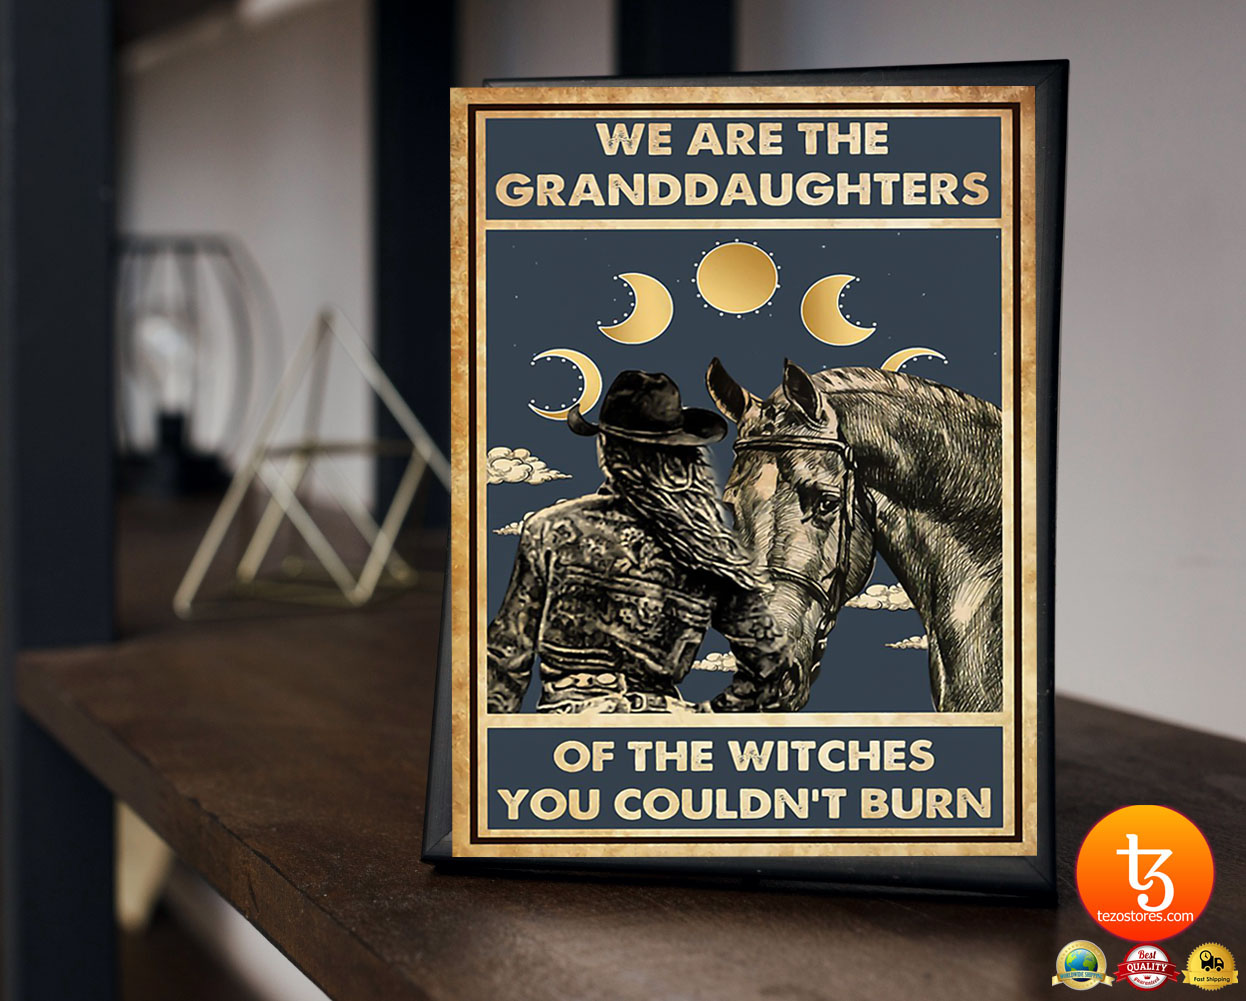 We are the granddaughters of the withches you coundn't burn poster 19